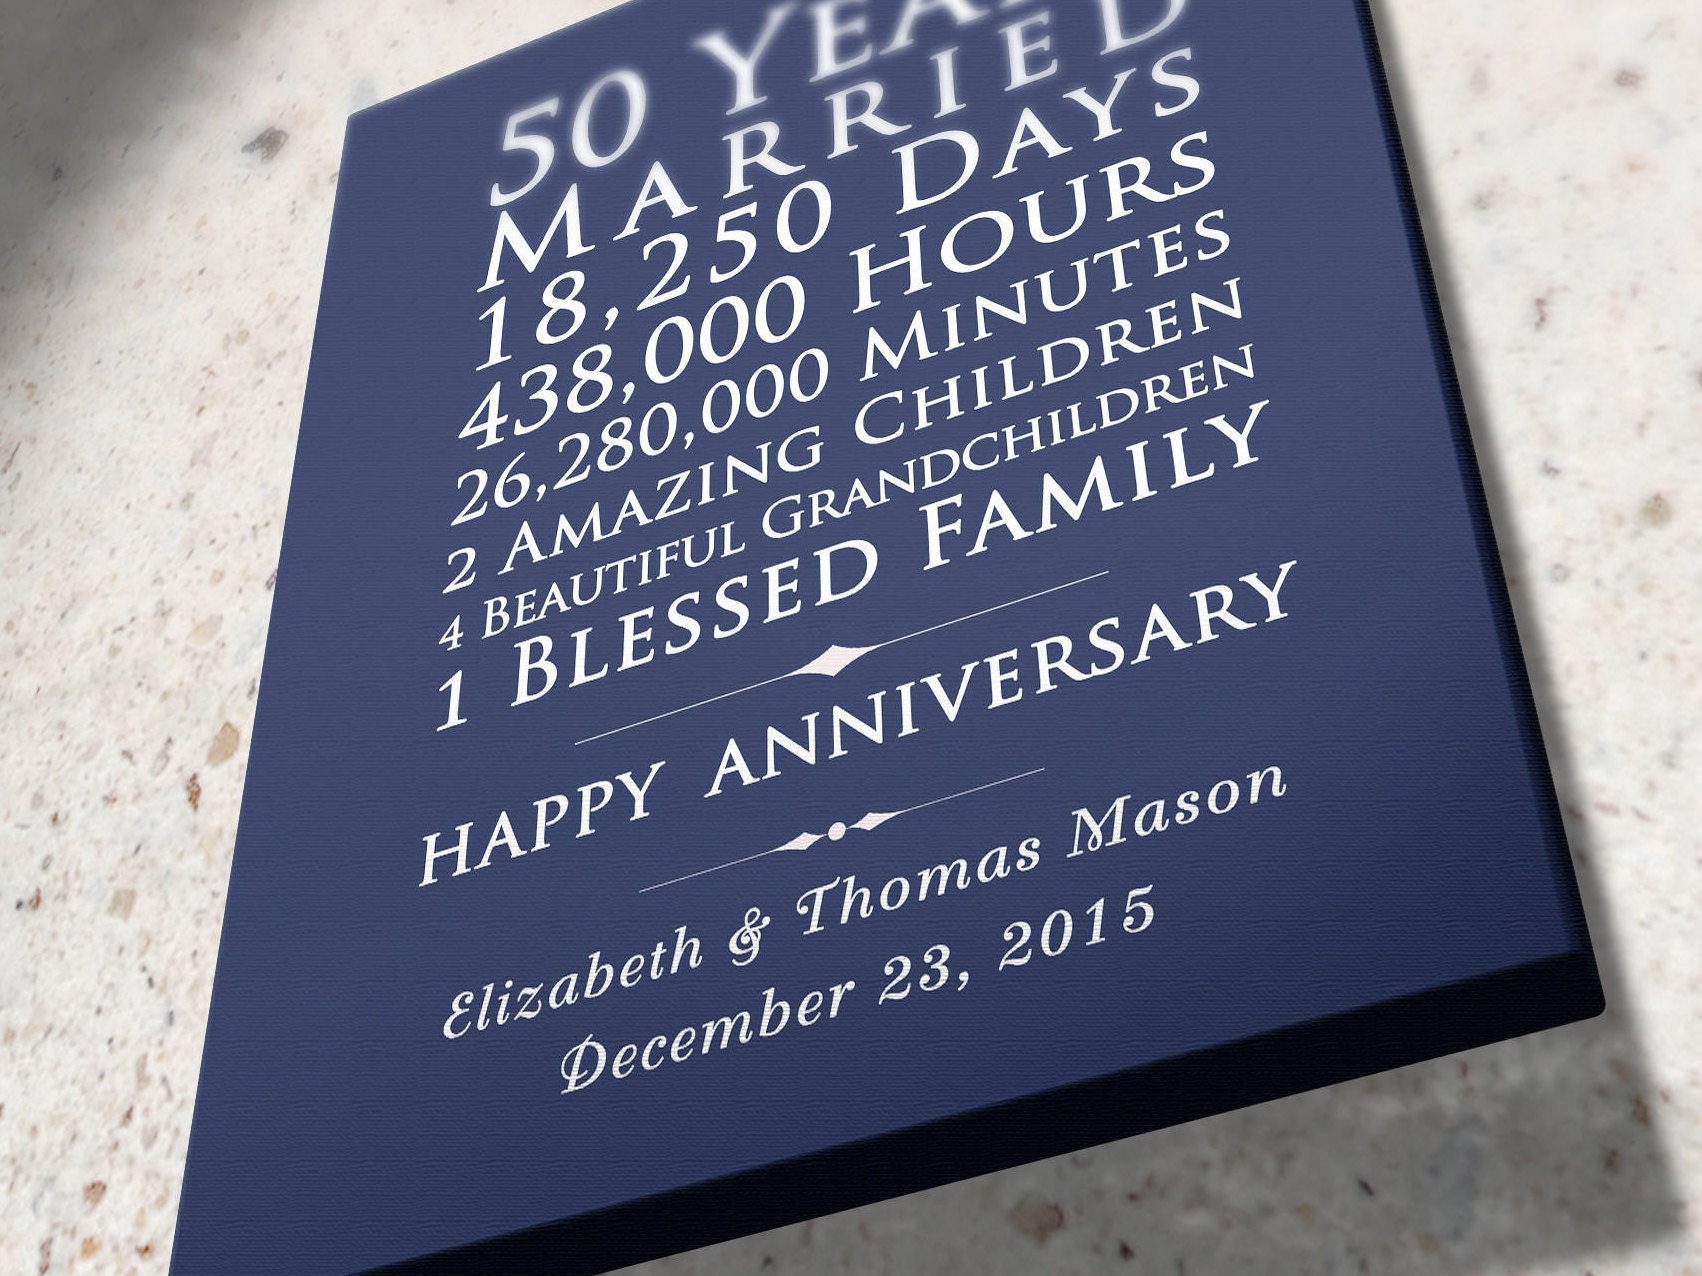 Personalised 50th Wedding Anniversary Gifts: Personalized 50th Wedding Anniversary Gift 50 Years Together